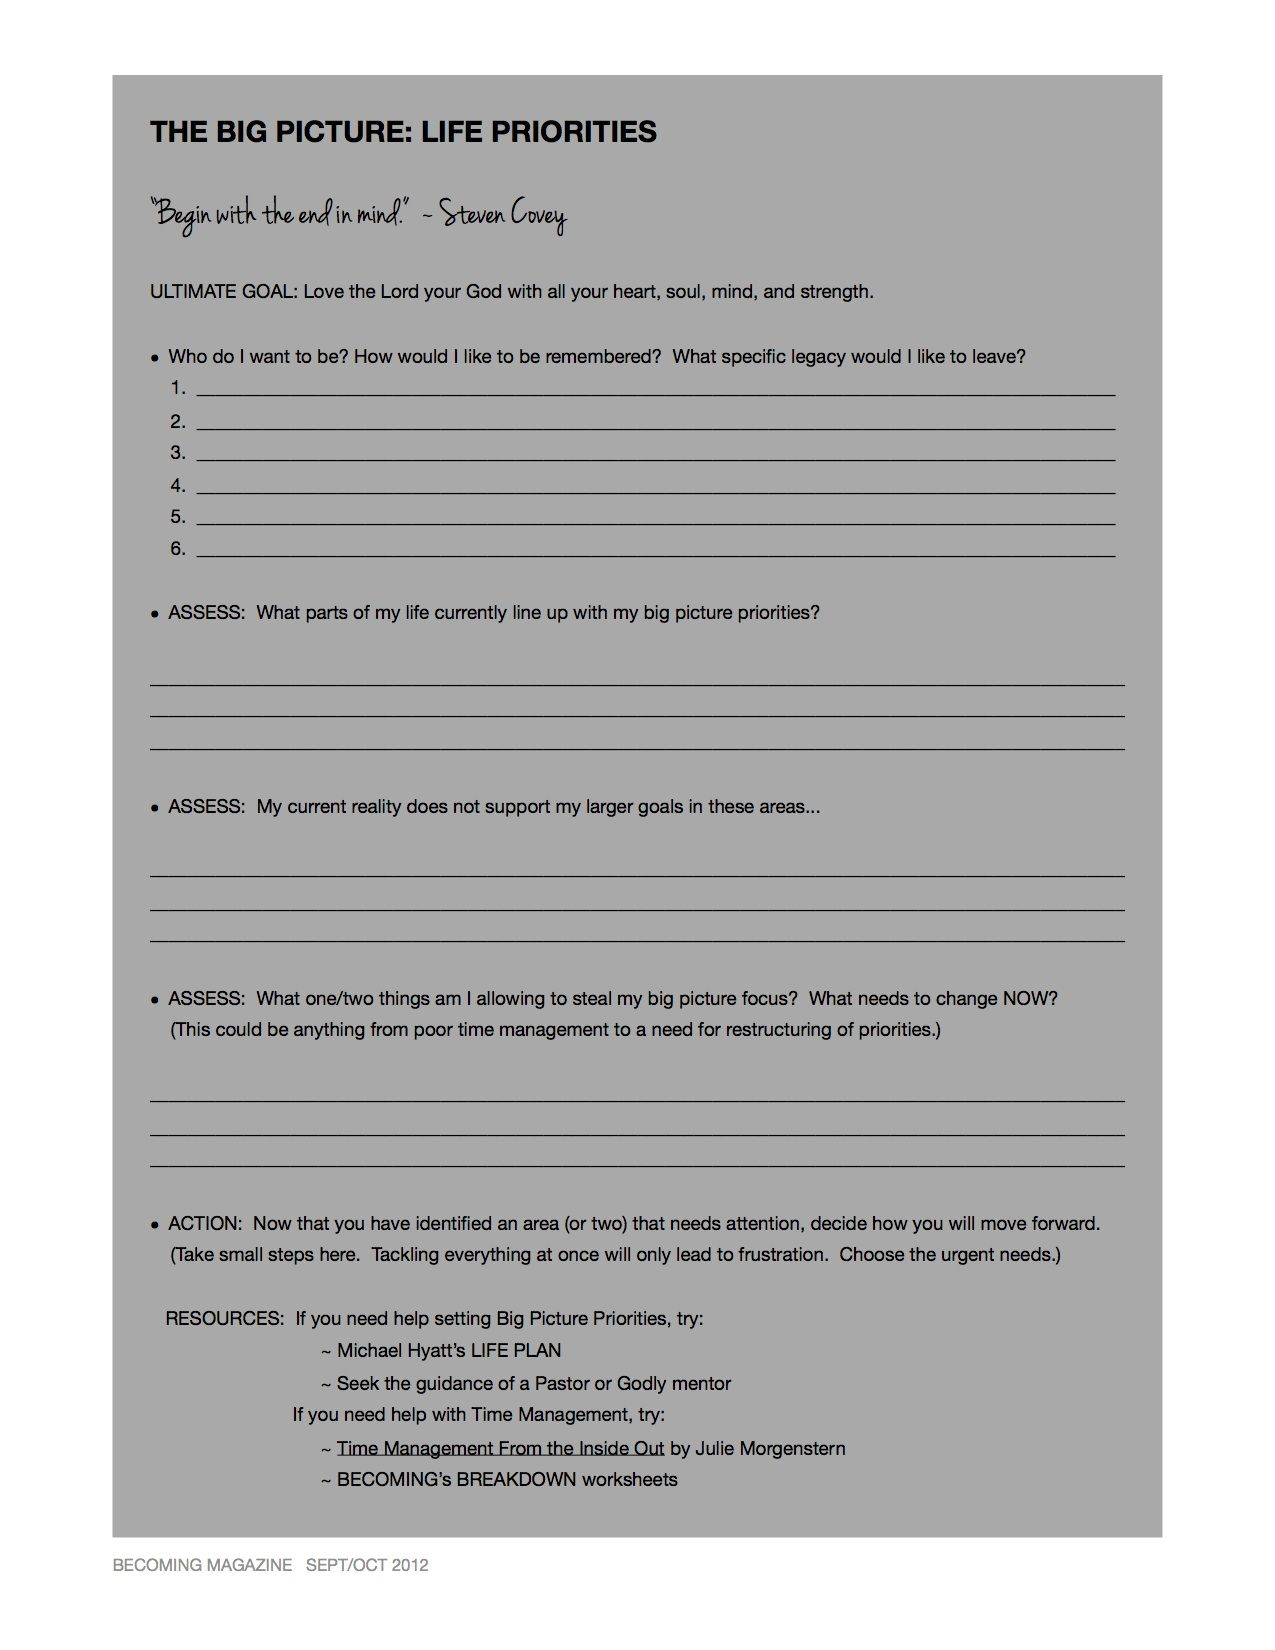 Becoming Time Worksheet 1 The Big Picture Life